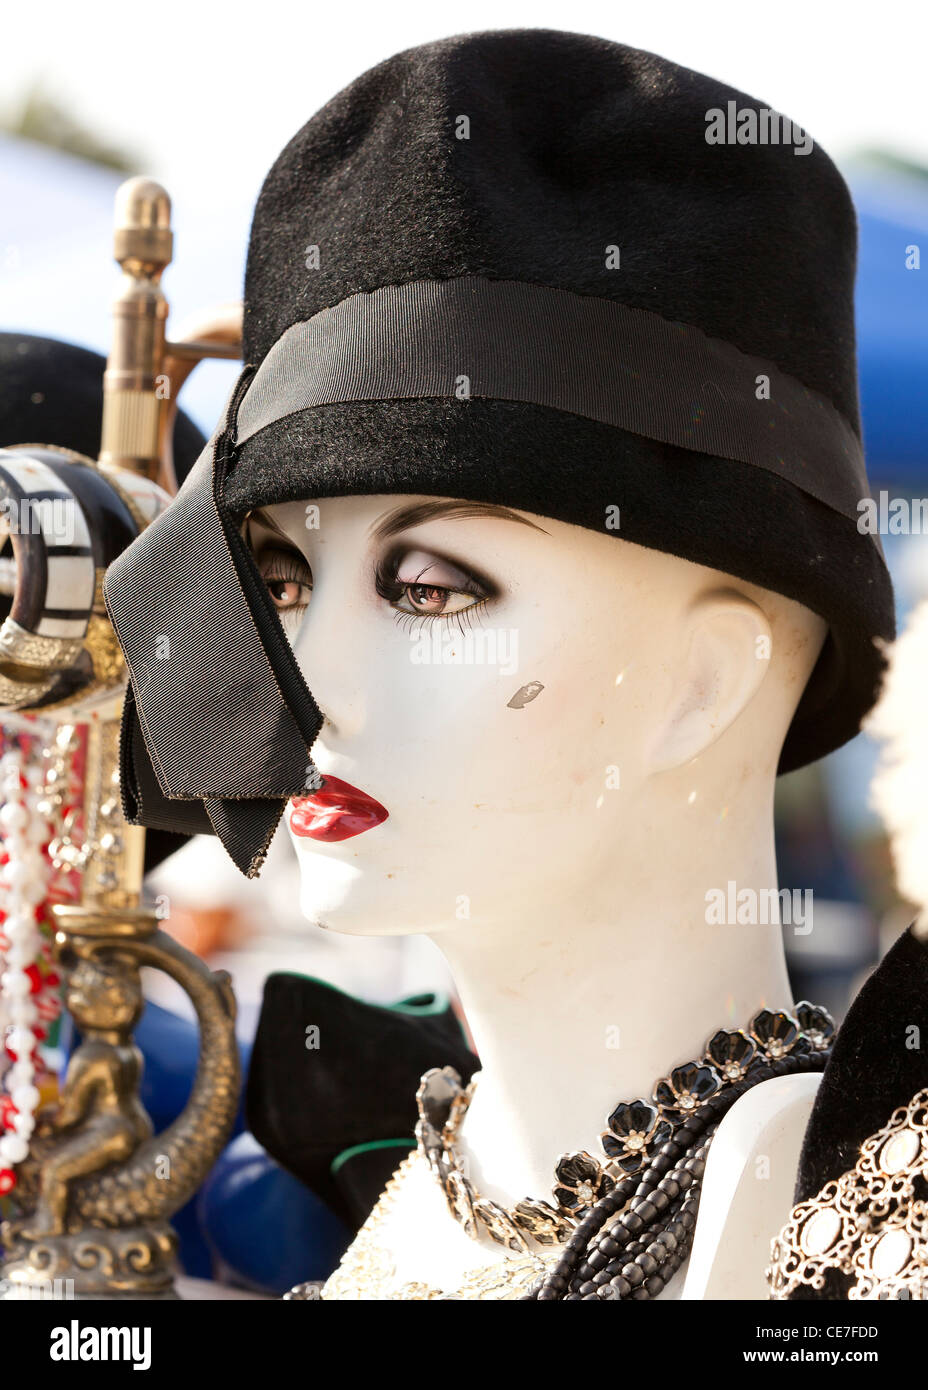 Female mannequin heads wearing hats at flea market - Stock Image